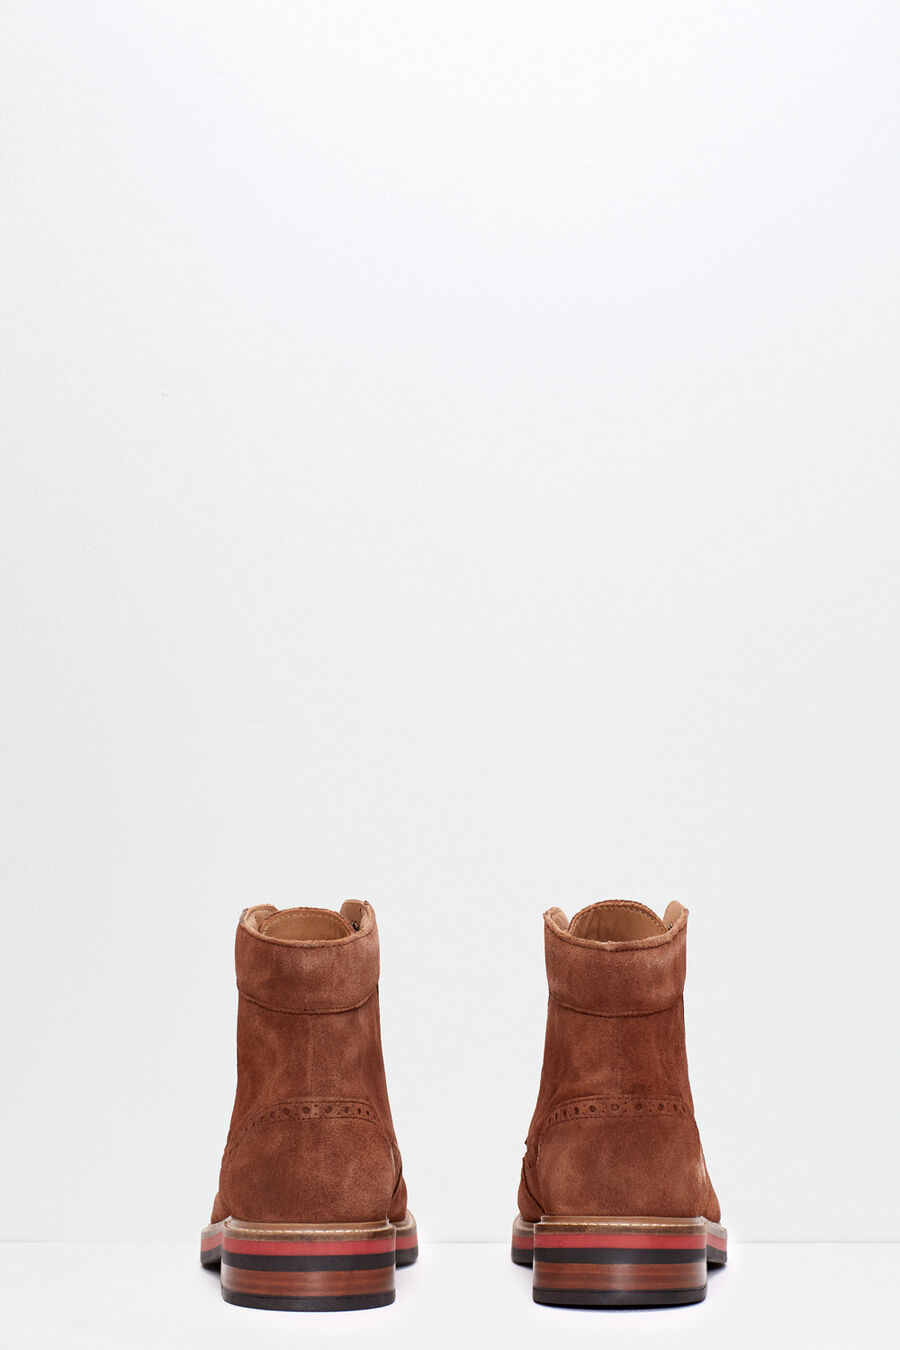 Split leather boots